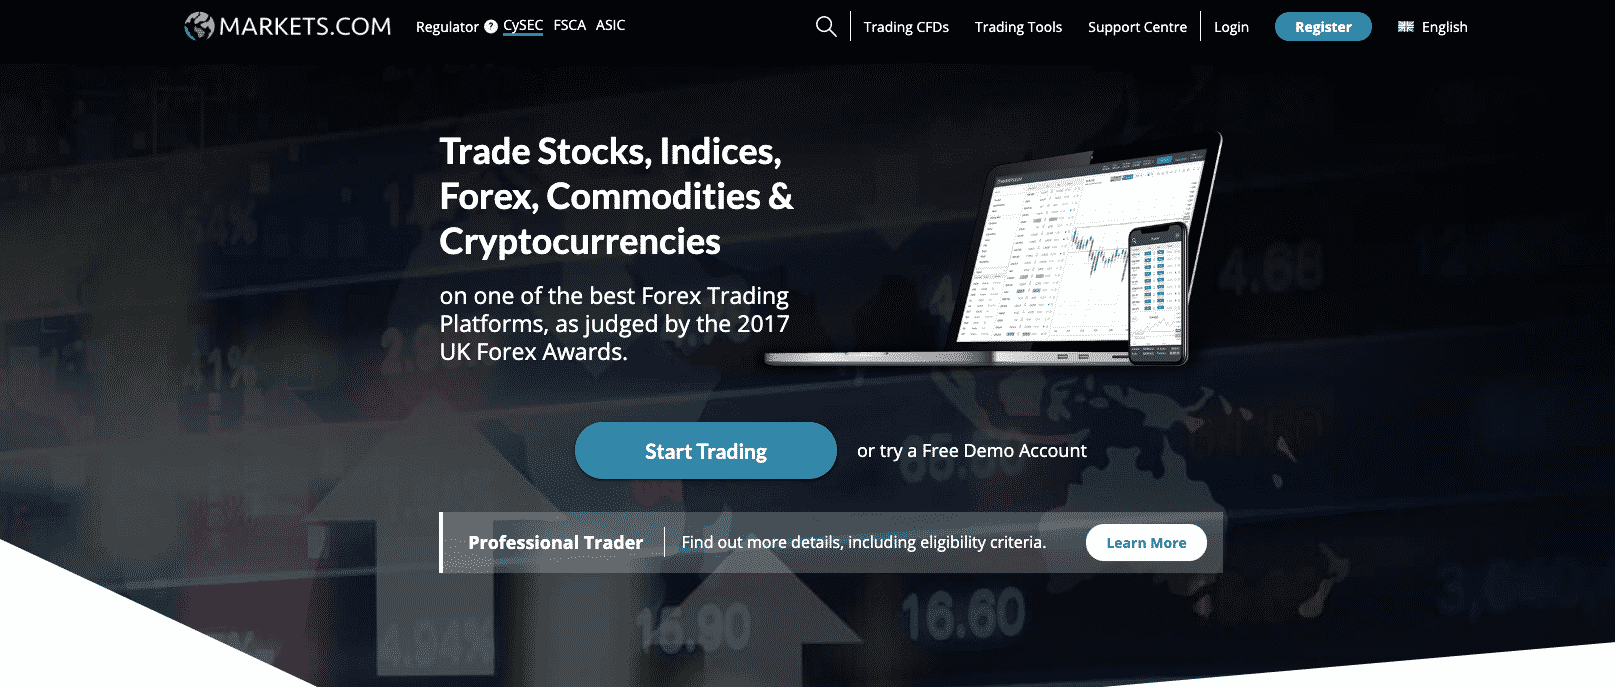 Markets.com Website Screenshot